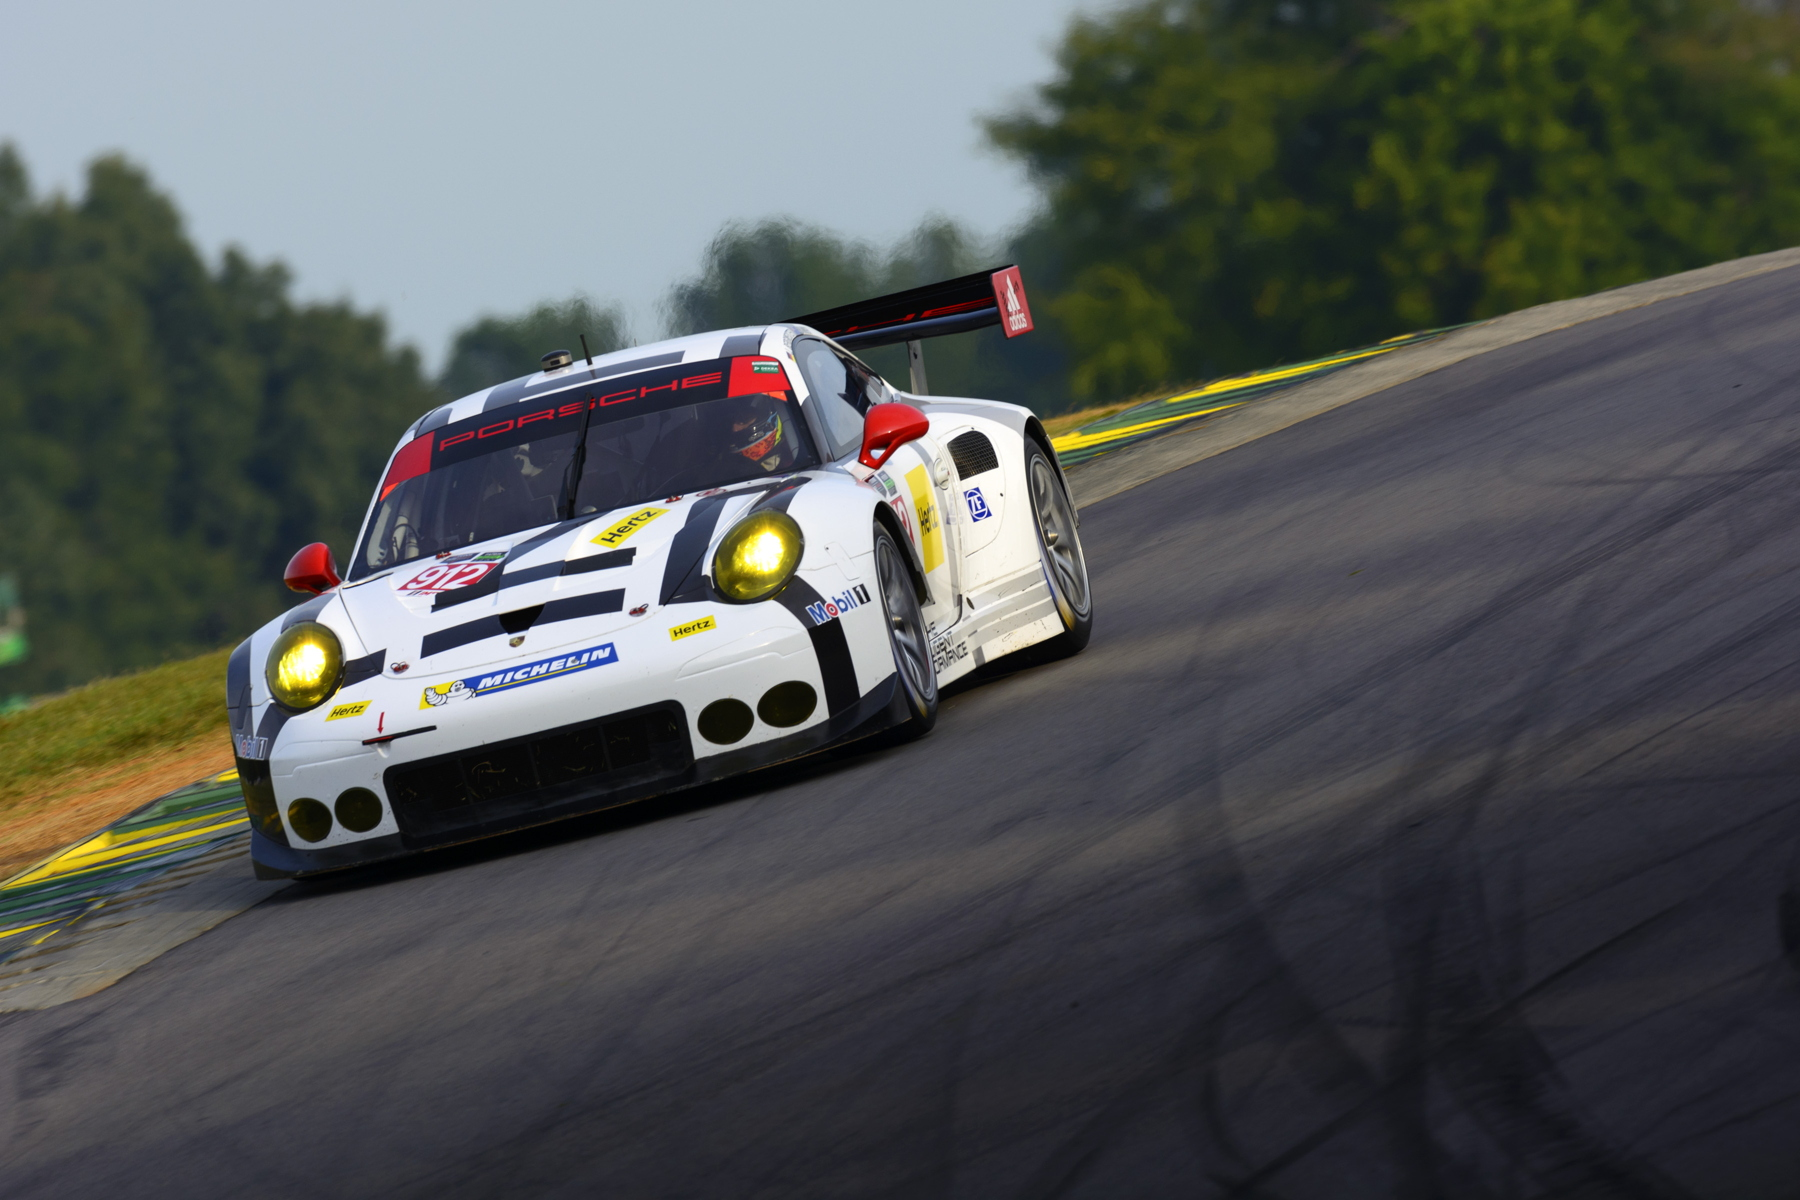 Earl Bamber and Jörg Bergmeister had to settle for their third second-place finish of 2015 at Virginia International Raceway.